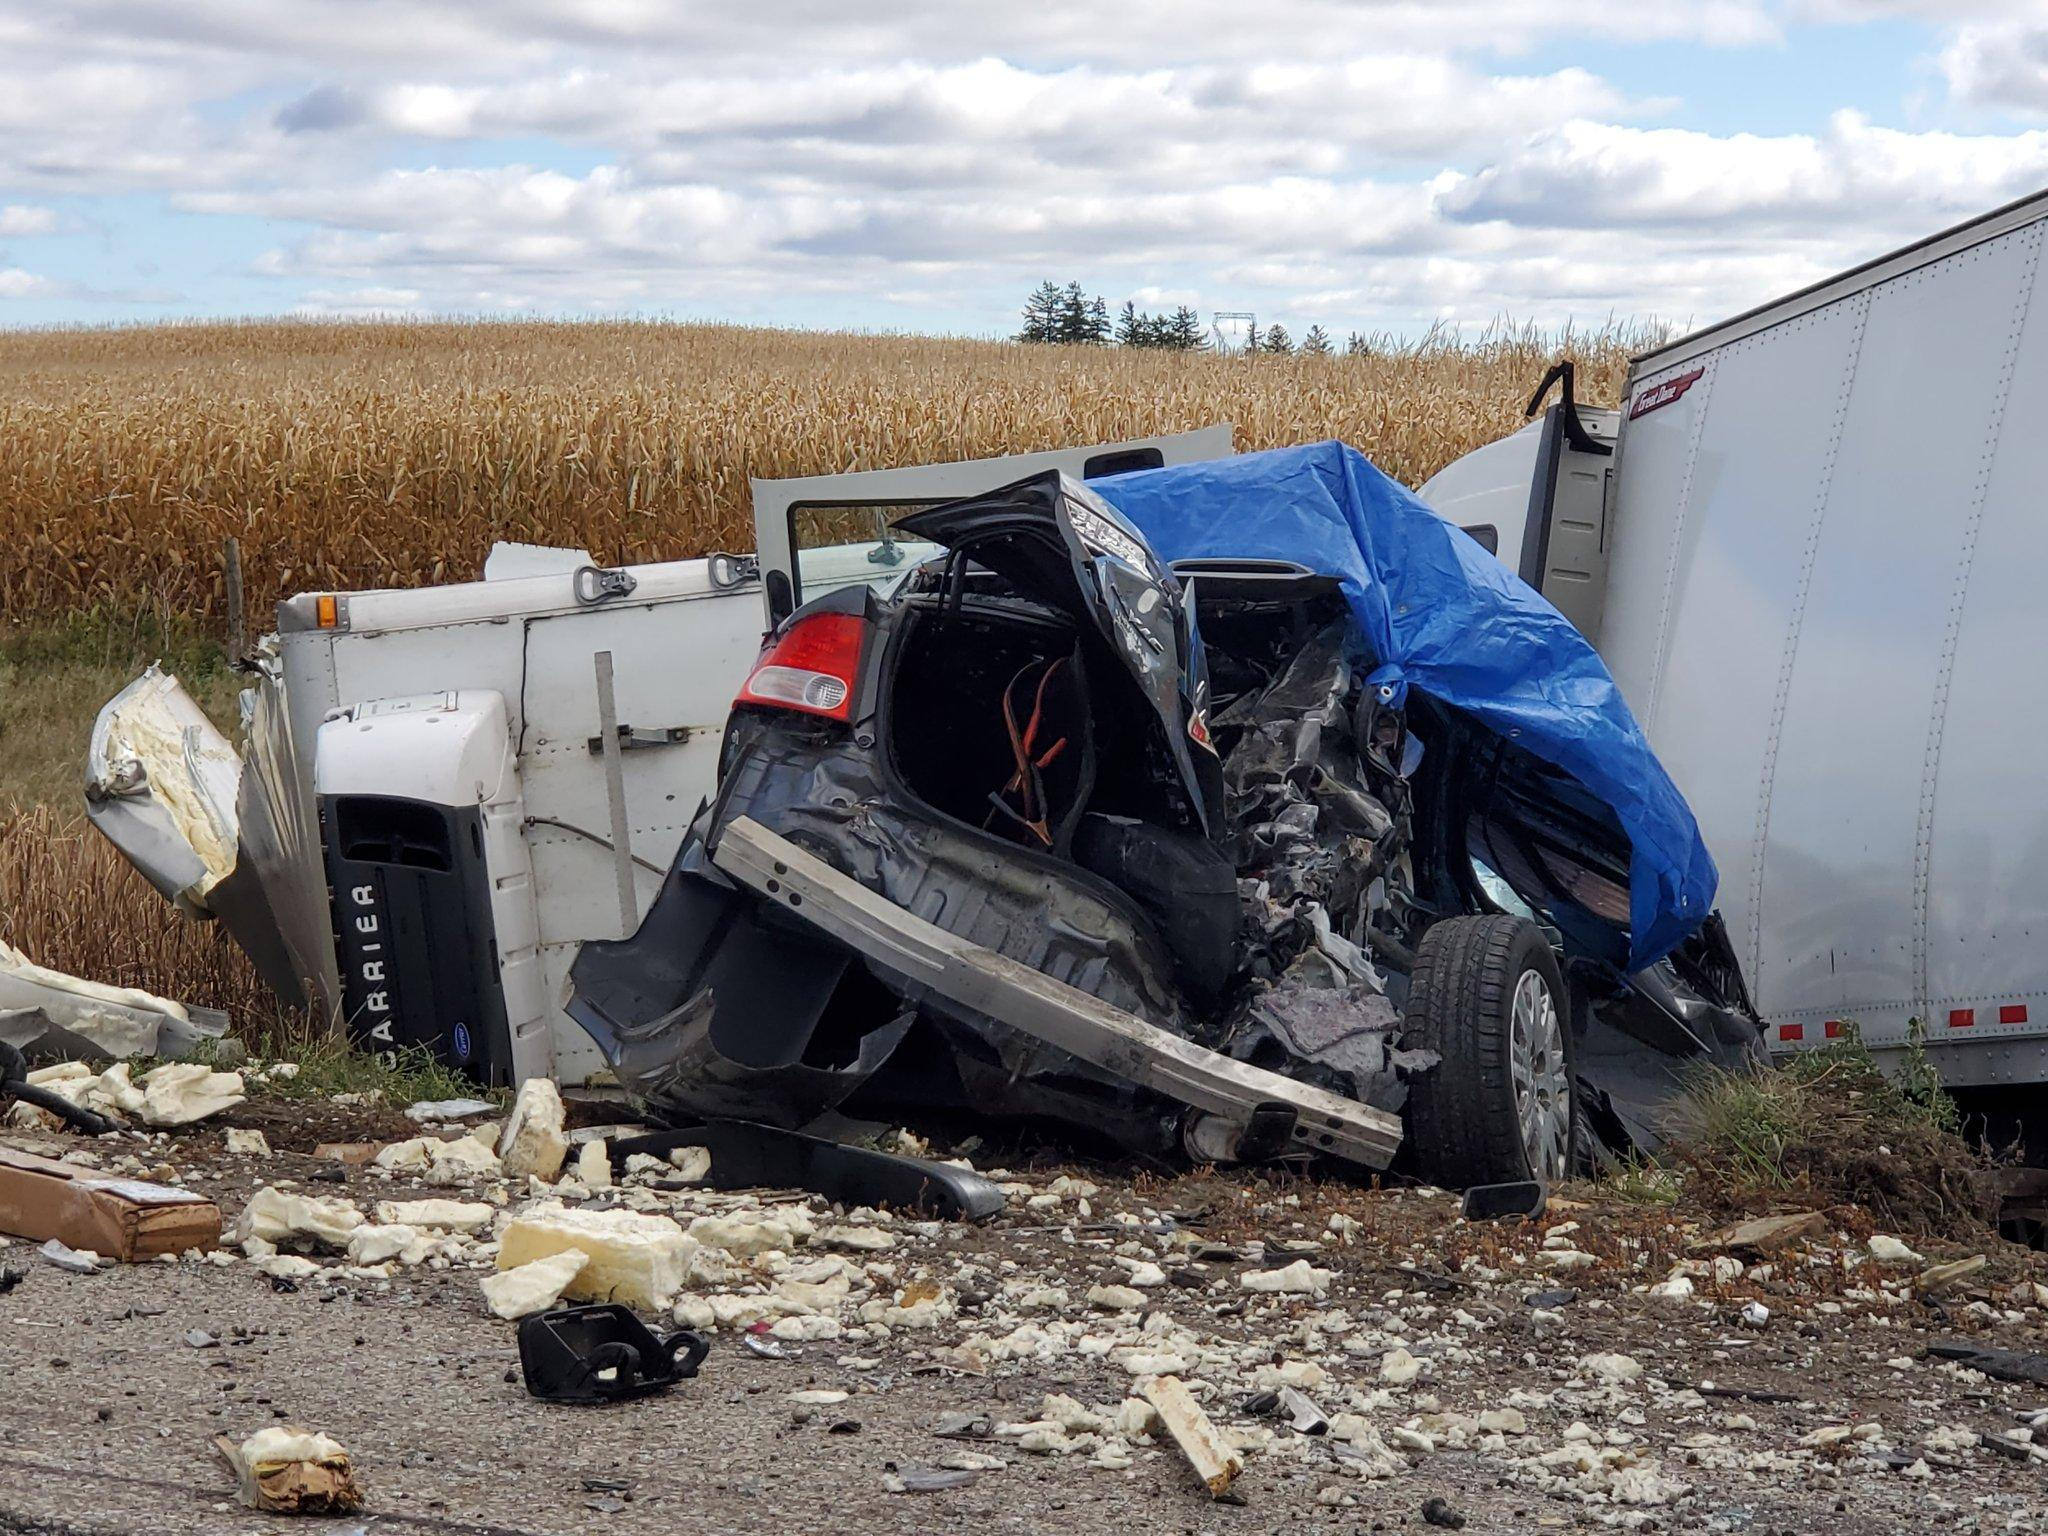 AM800-News-OPP-401-Crash-Iona-October-2019.jpg